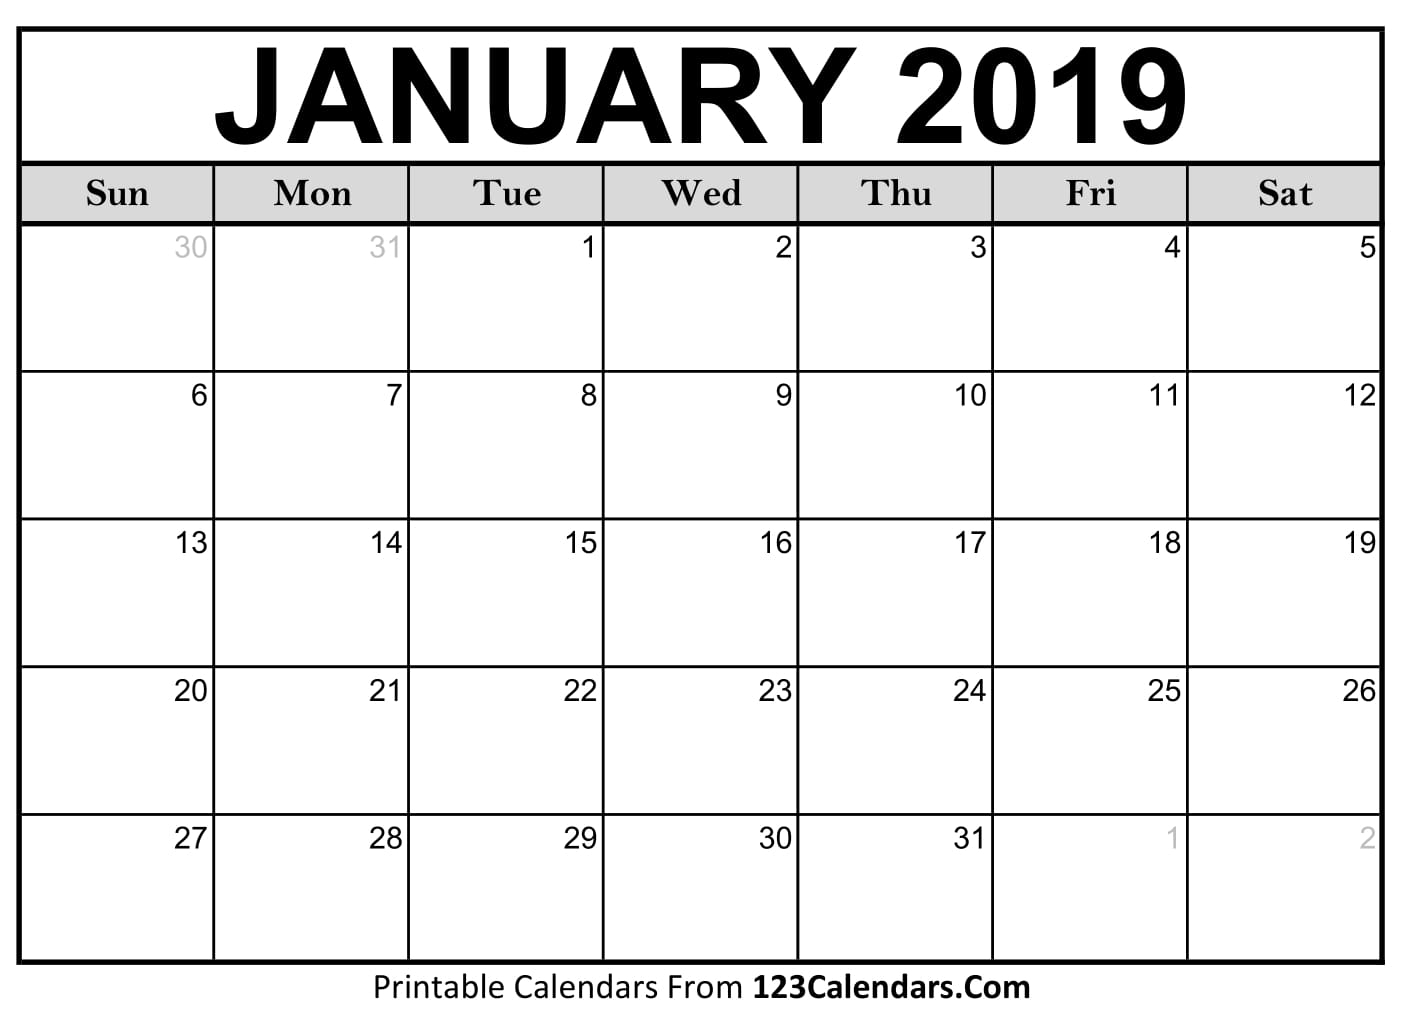 Blank January 2019 Calendar - Easily Printable - 123Calendars pertaining to Picture Of A January Calender